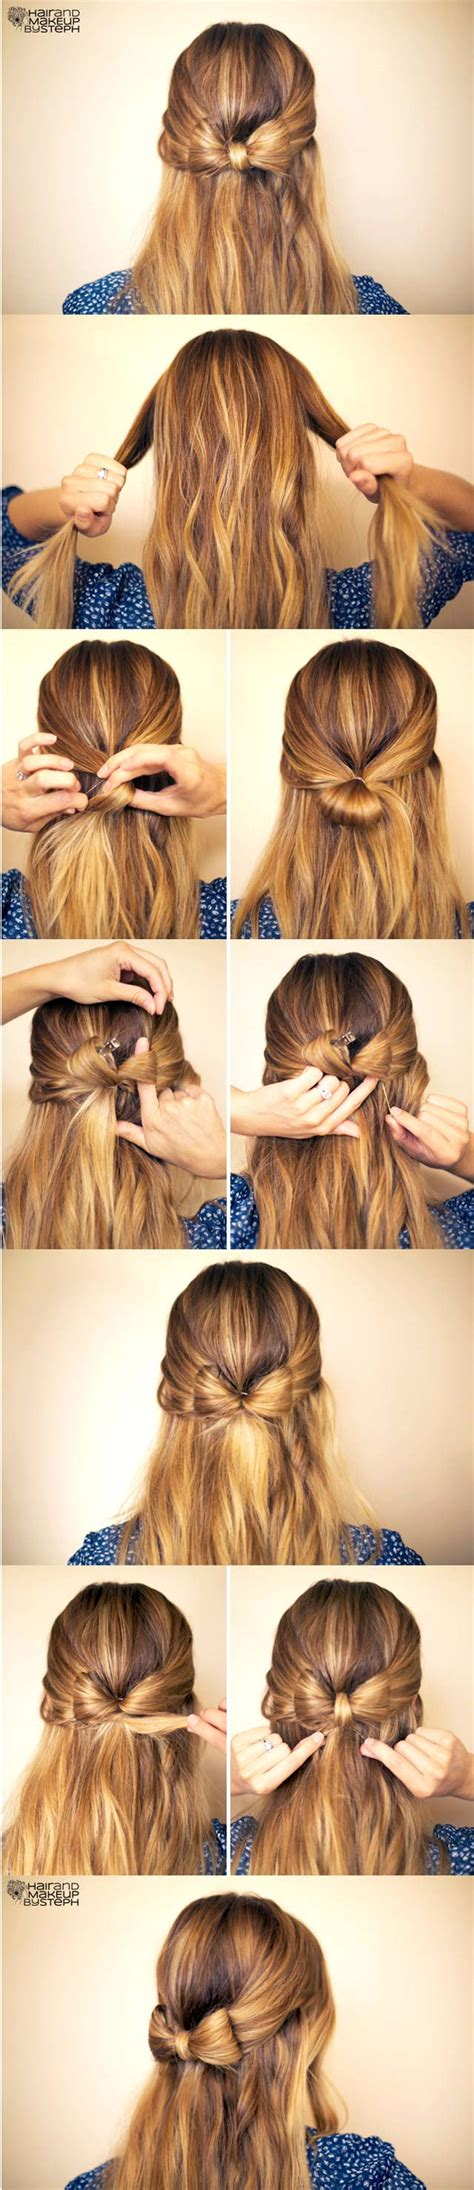 diy cute hairstyles diy your step by step for the best cute hairstyles